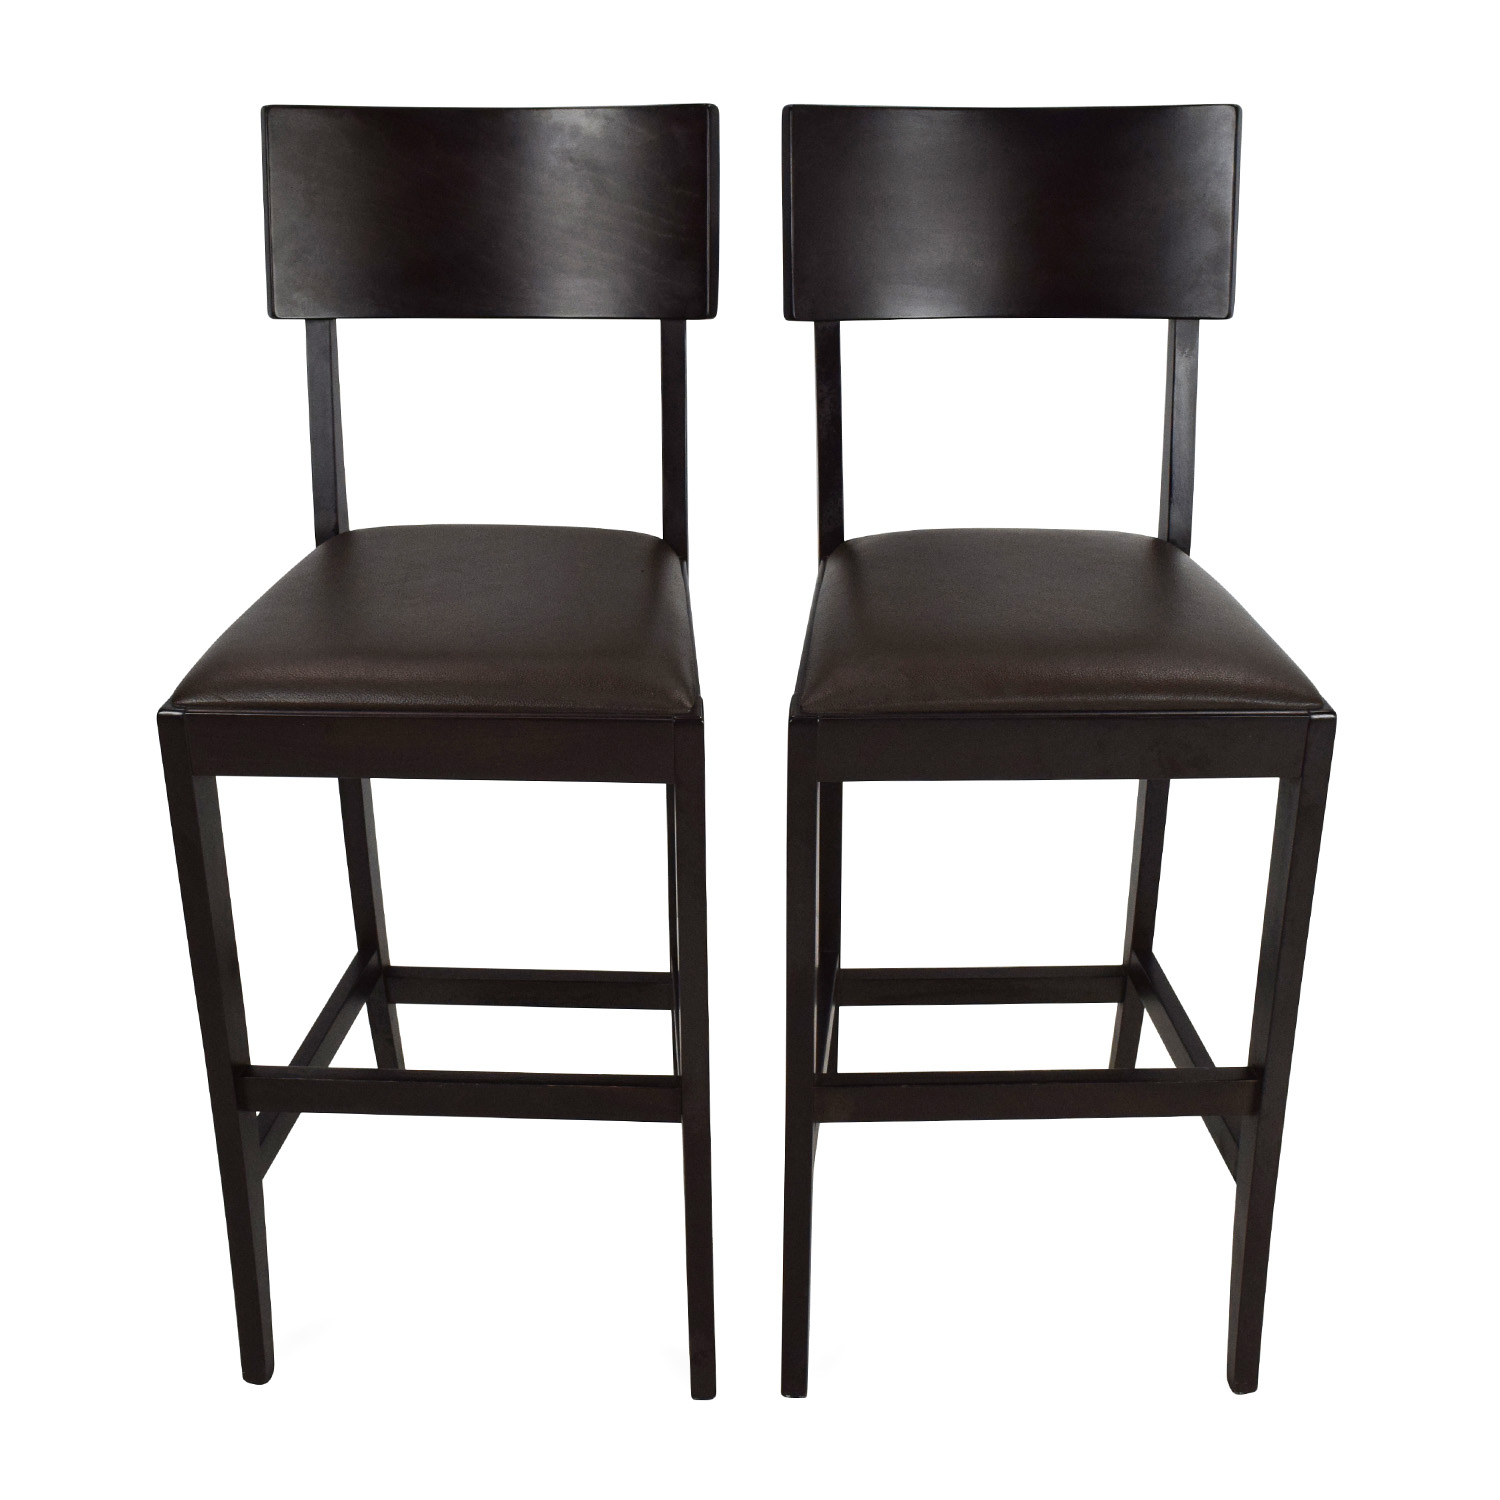 52 OFF Crate and Barrel Crate and Barrel Bar Stools Chairs